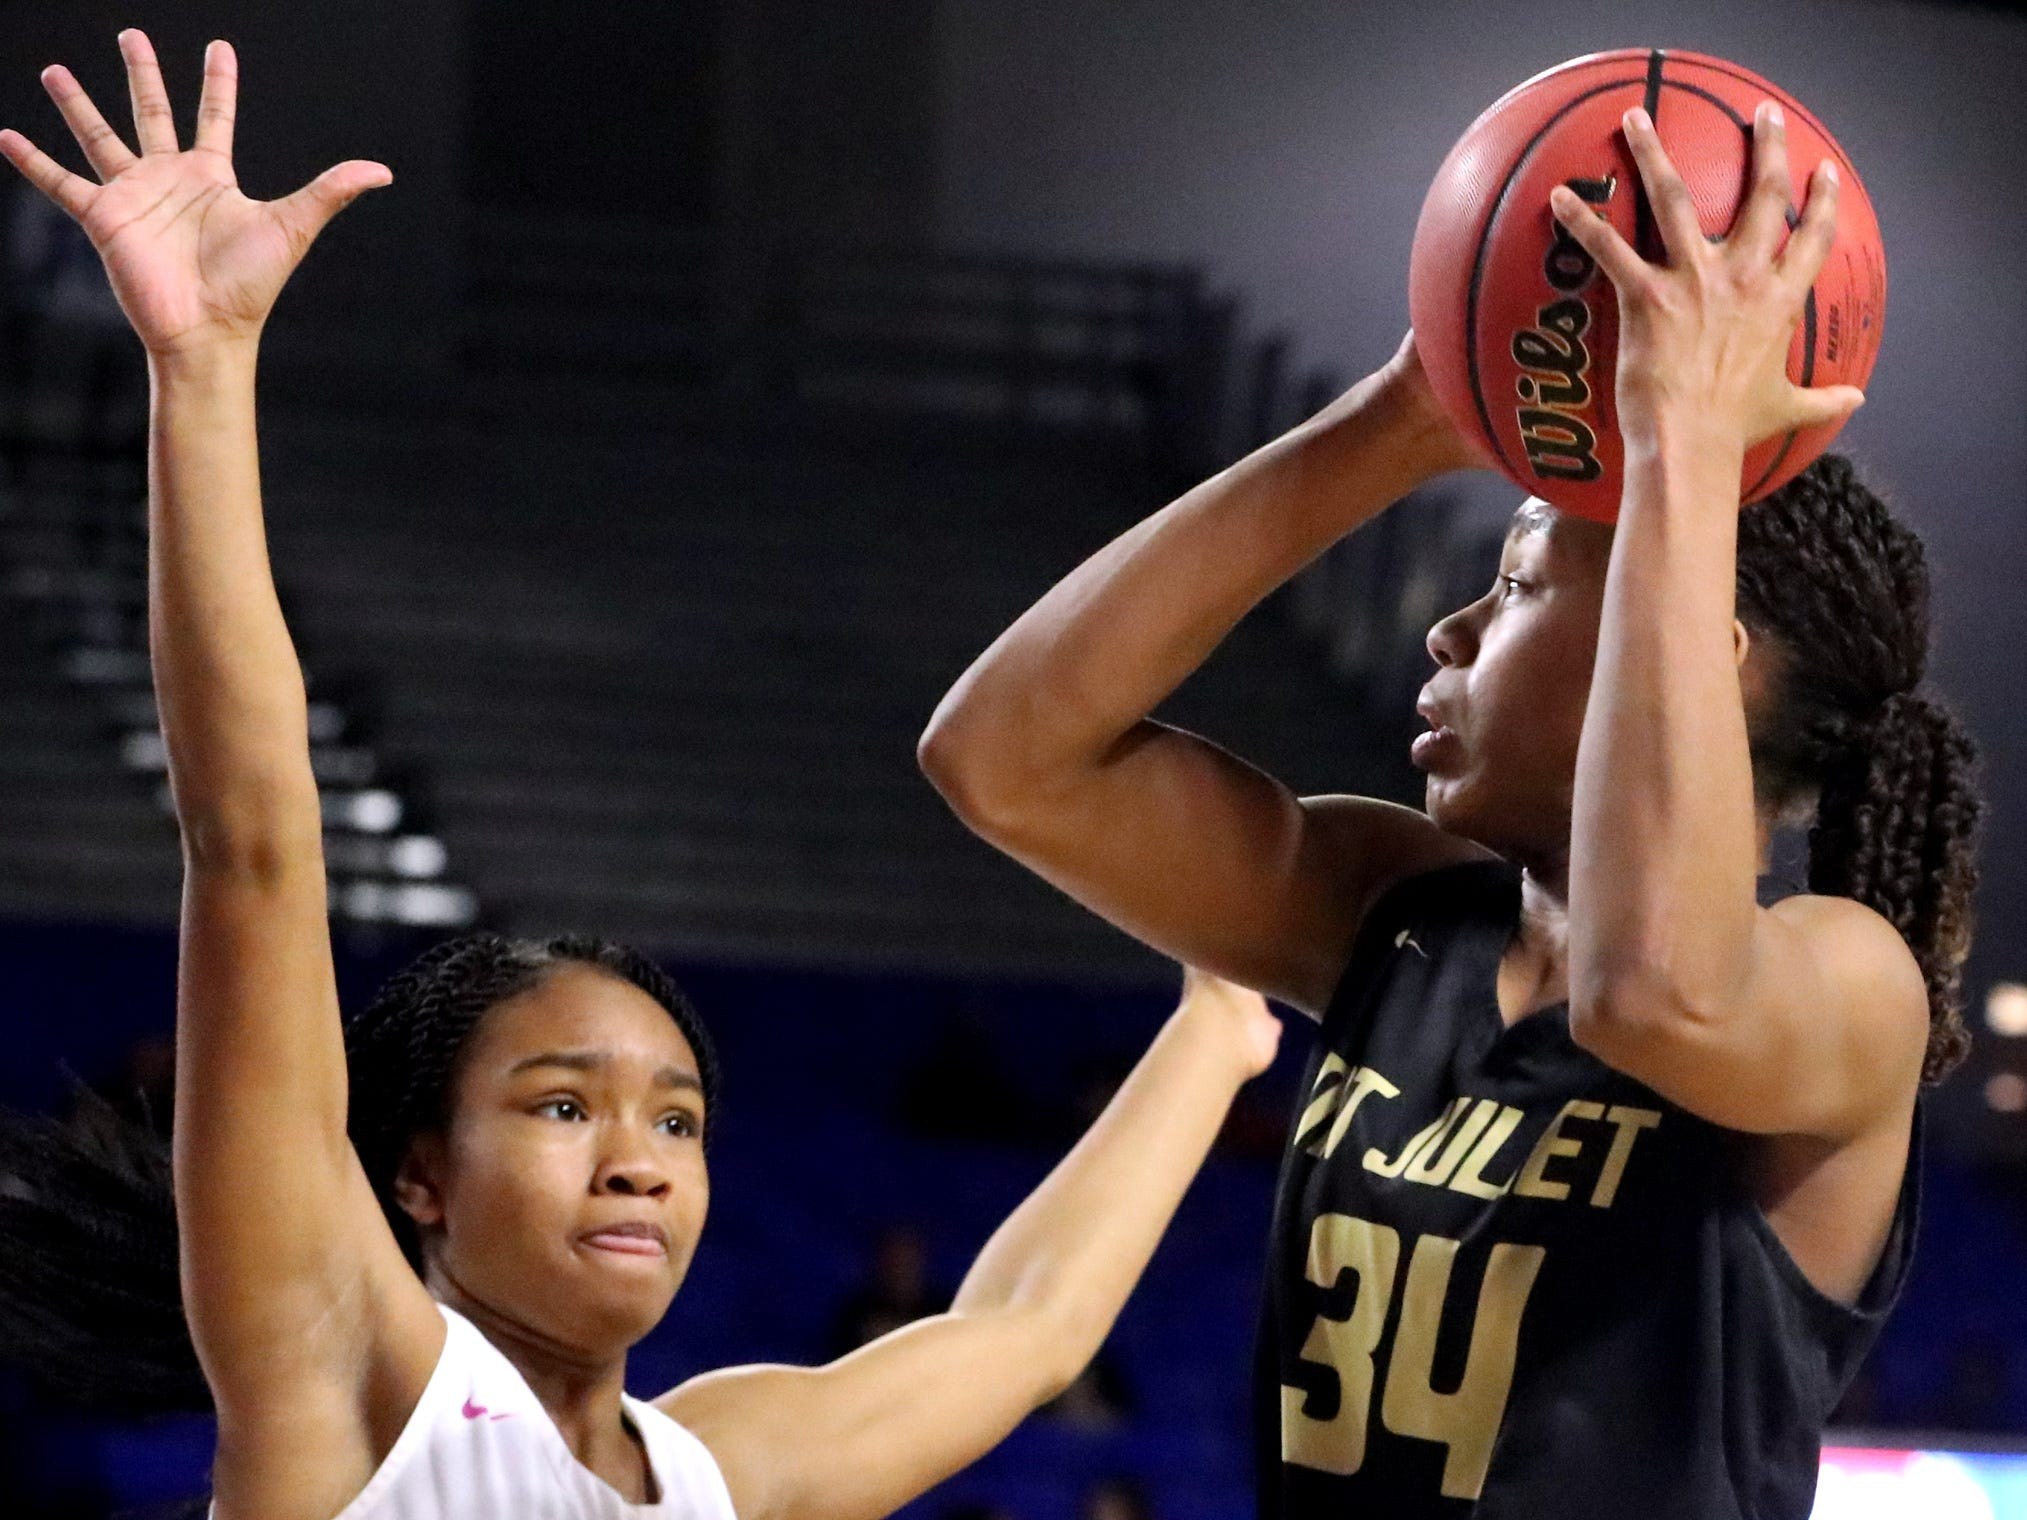 Mt. Juliet's Tondriannha Davis (34) shoots the ball as Houston's Aliyah Wilson (10) guards her during the quarterfinal round of the TSSAA Div. 1 Class AAA Girls State Tournament, on Wednesday, March 6, 2019, at Murphy Center in Murfreesboro, Tenn.